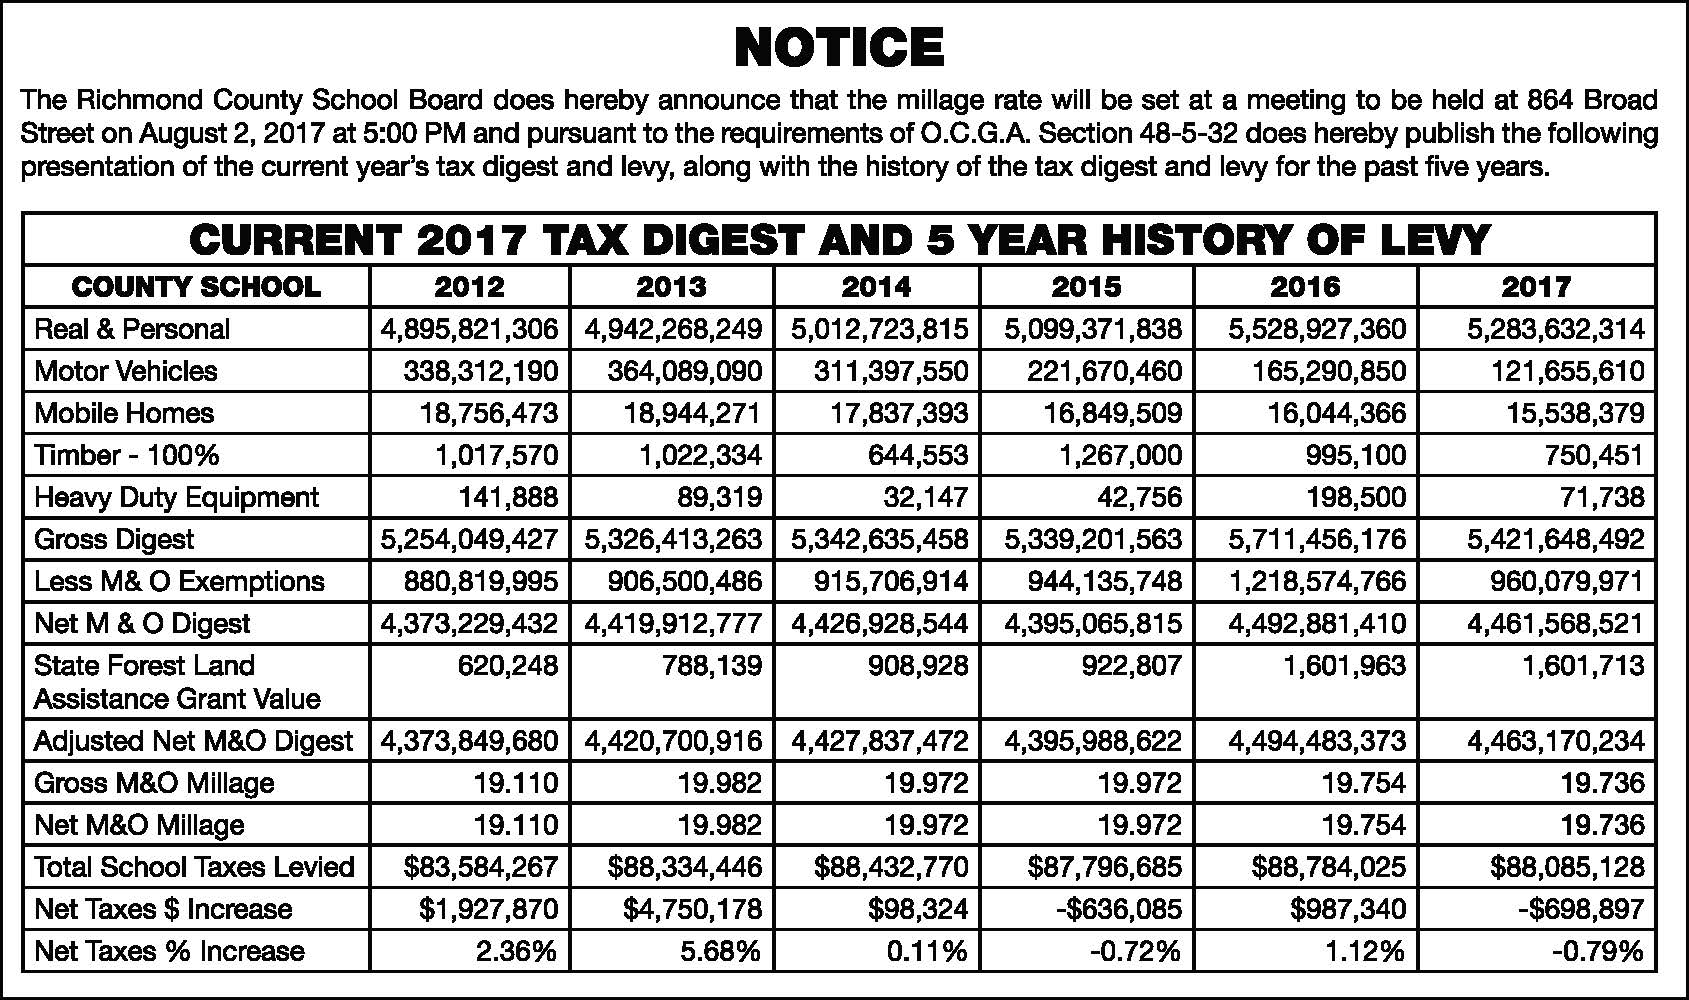 Current 2017 Tax Digest and 5 Year History of Levy